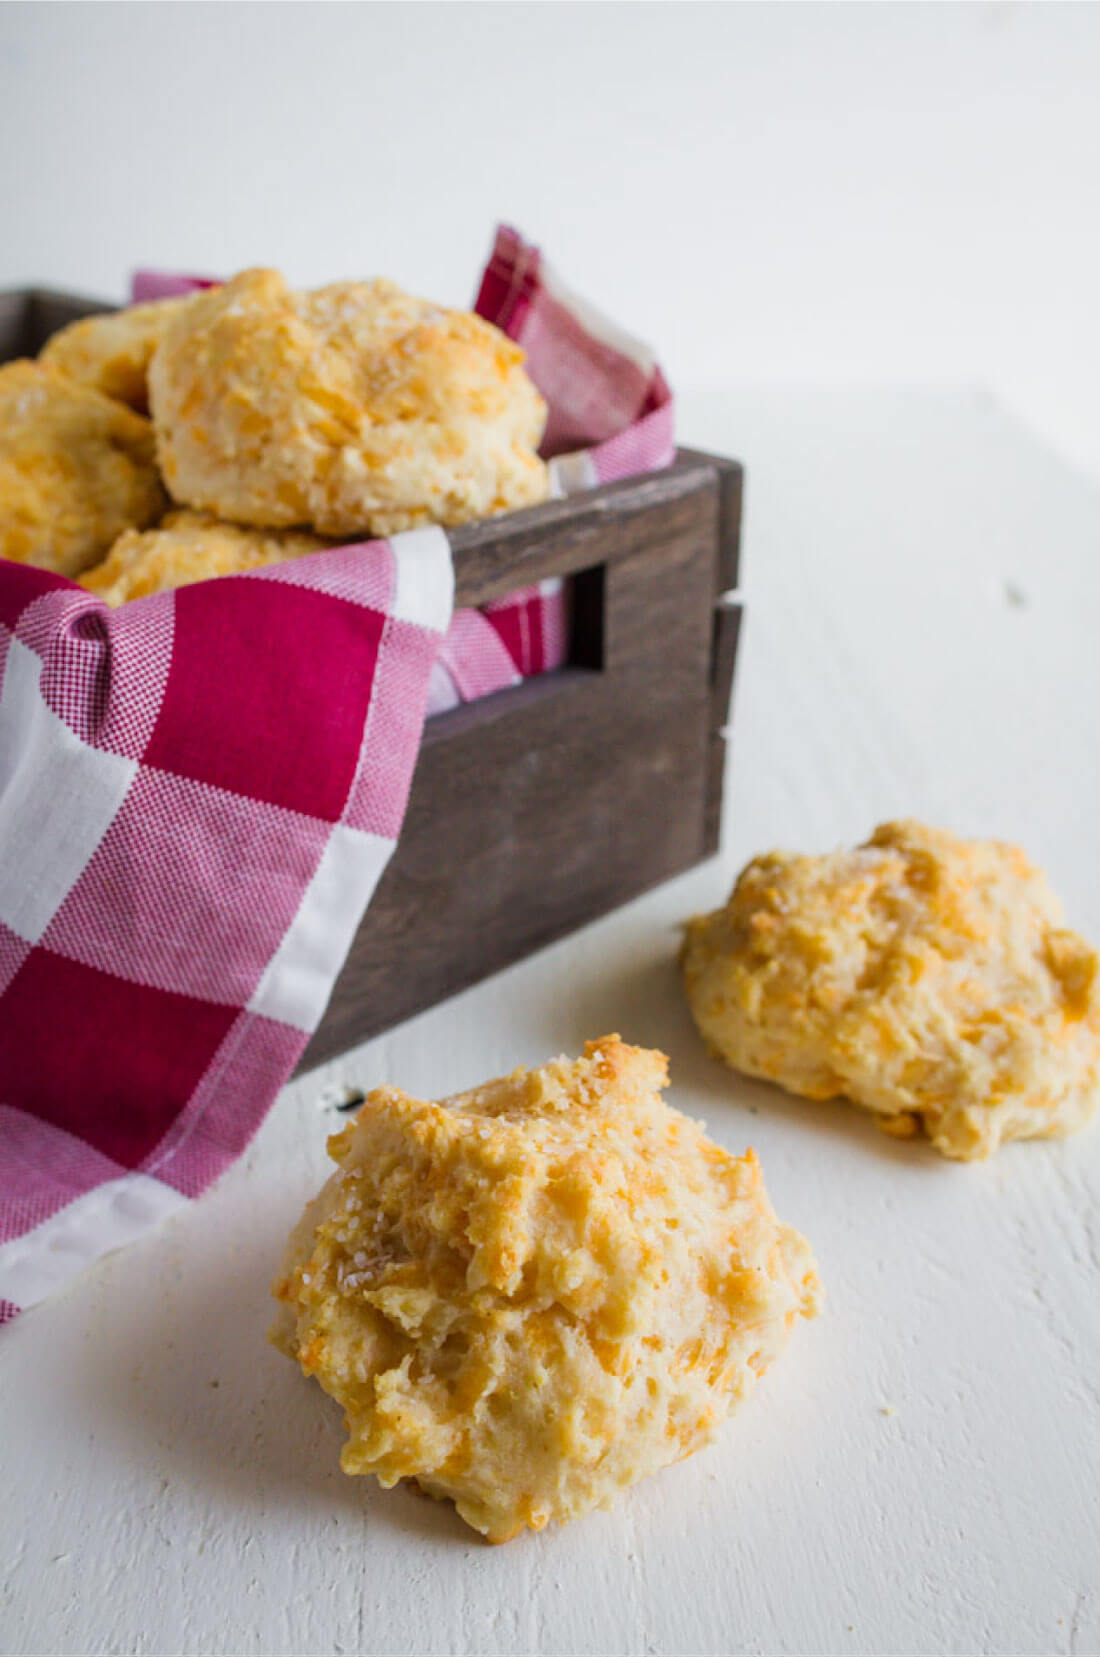 Homemade Biscuits - these melt in your mouth cheddar biscuits are not only easy to make but soooo good! from www.thirtyhandmadedays.com